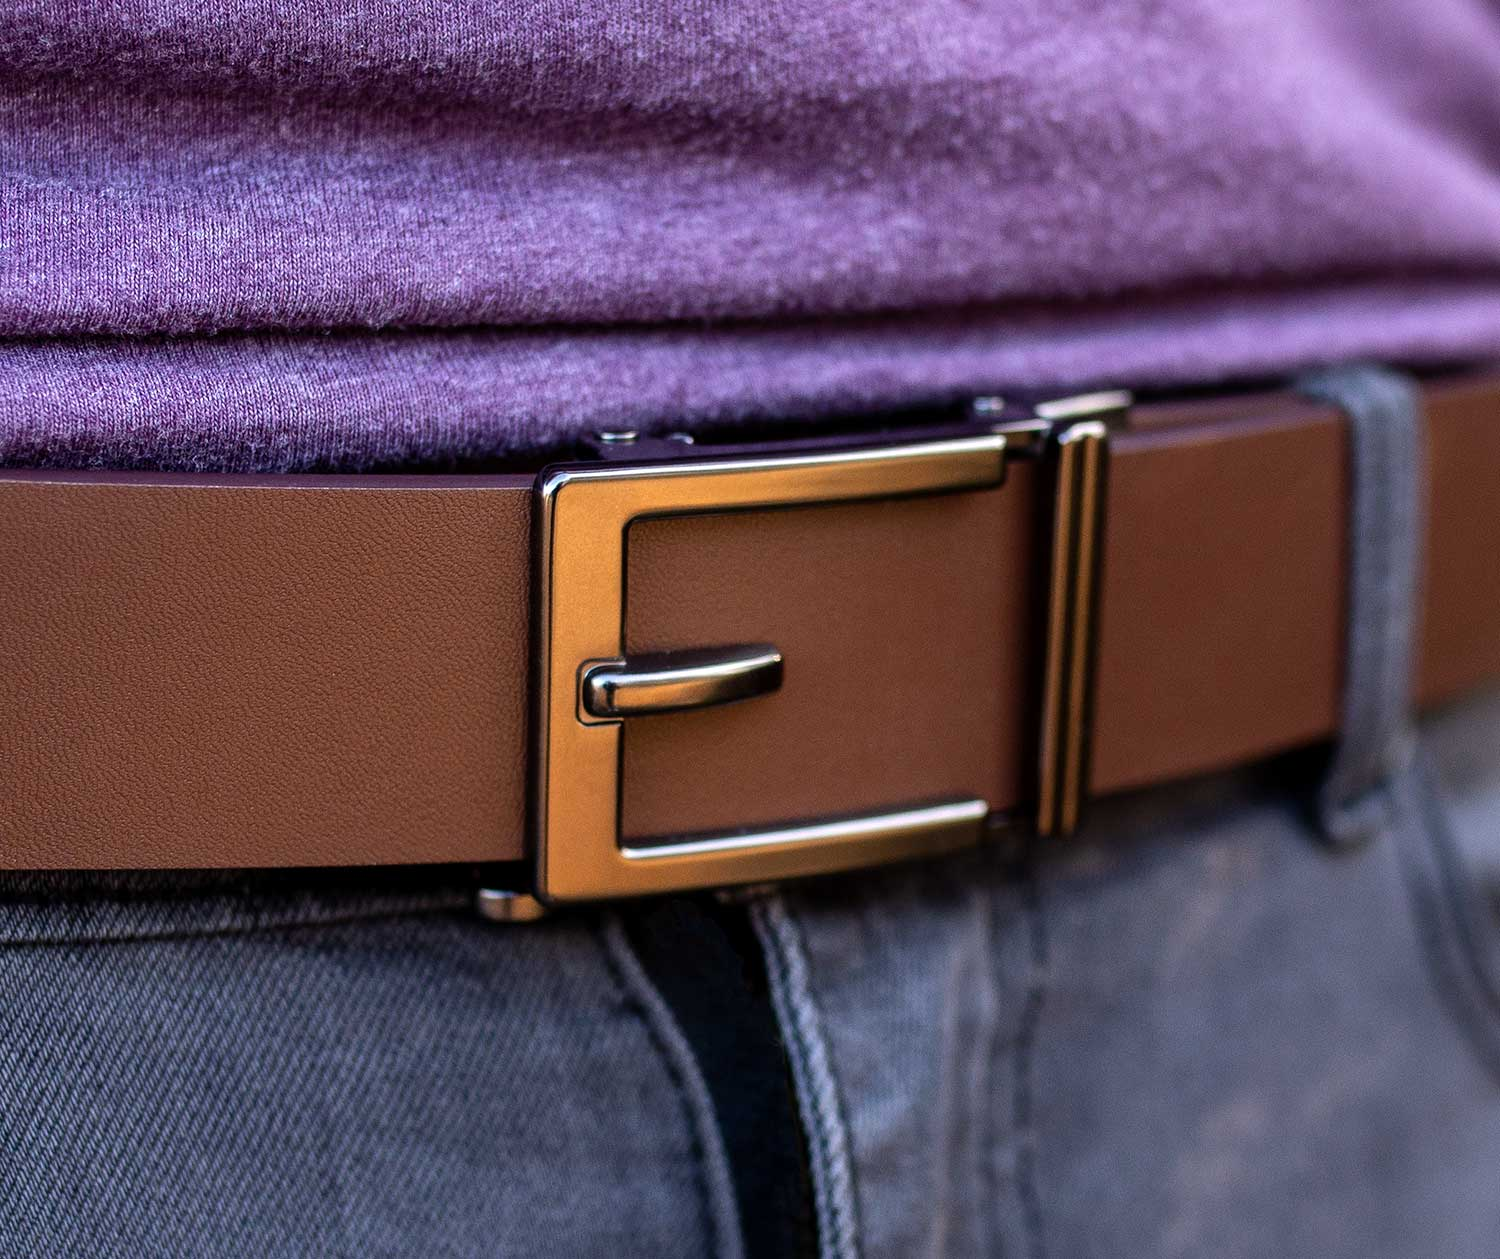 Kore Essentials Track Belt Review Your Average Guy The genuine leather belt features a reinforced polyurethane core for added strength and rigidity. kore essentials track belt review